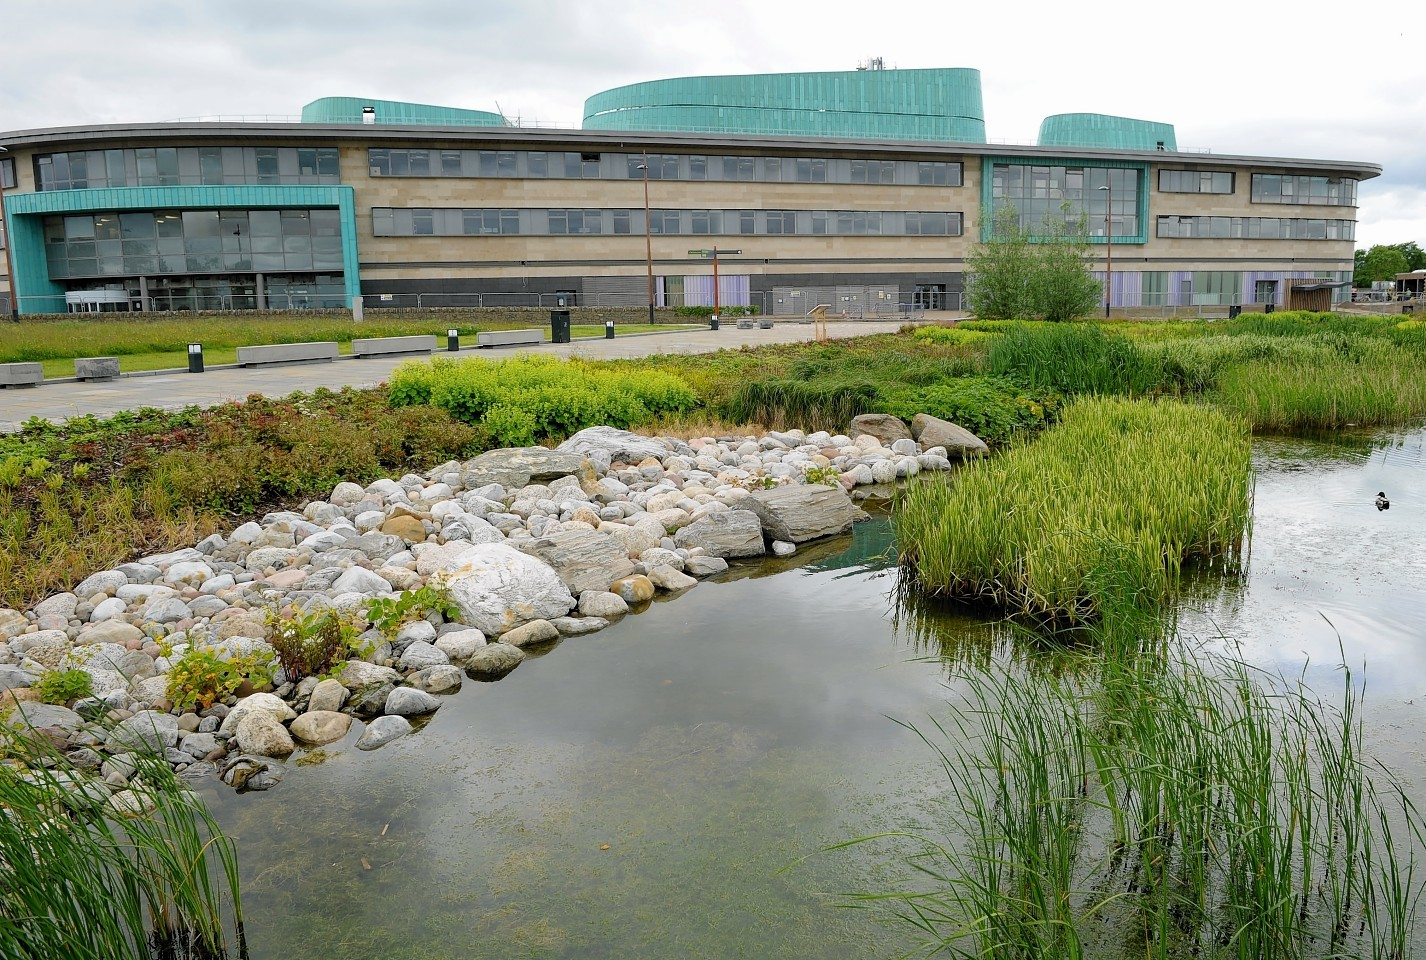 The Inverness College UHI building